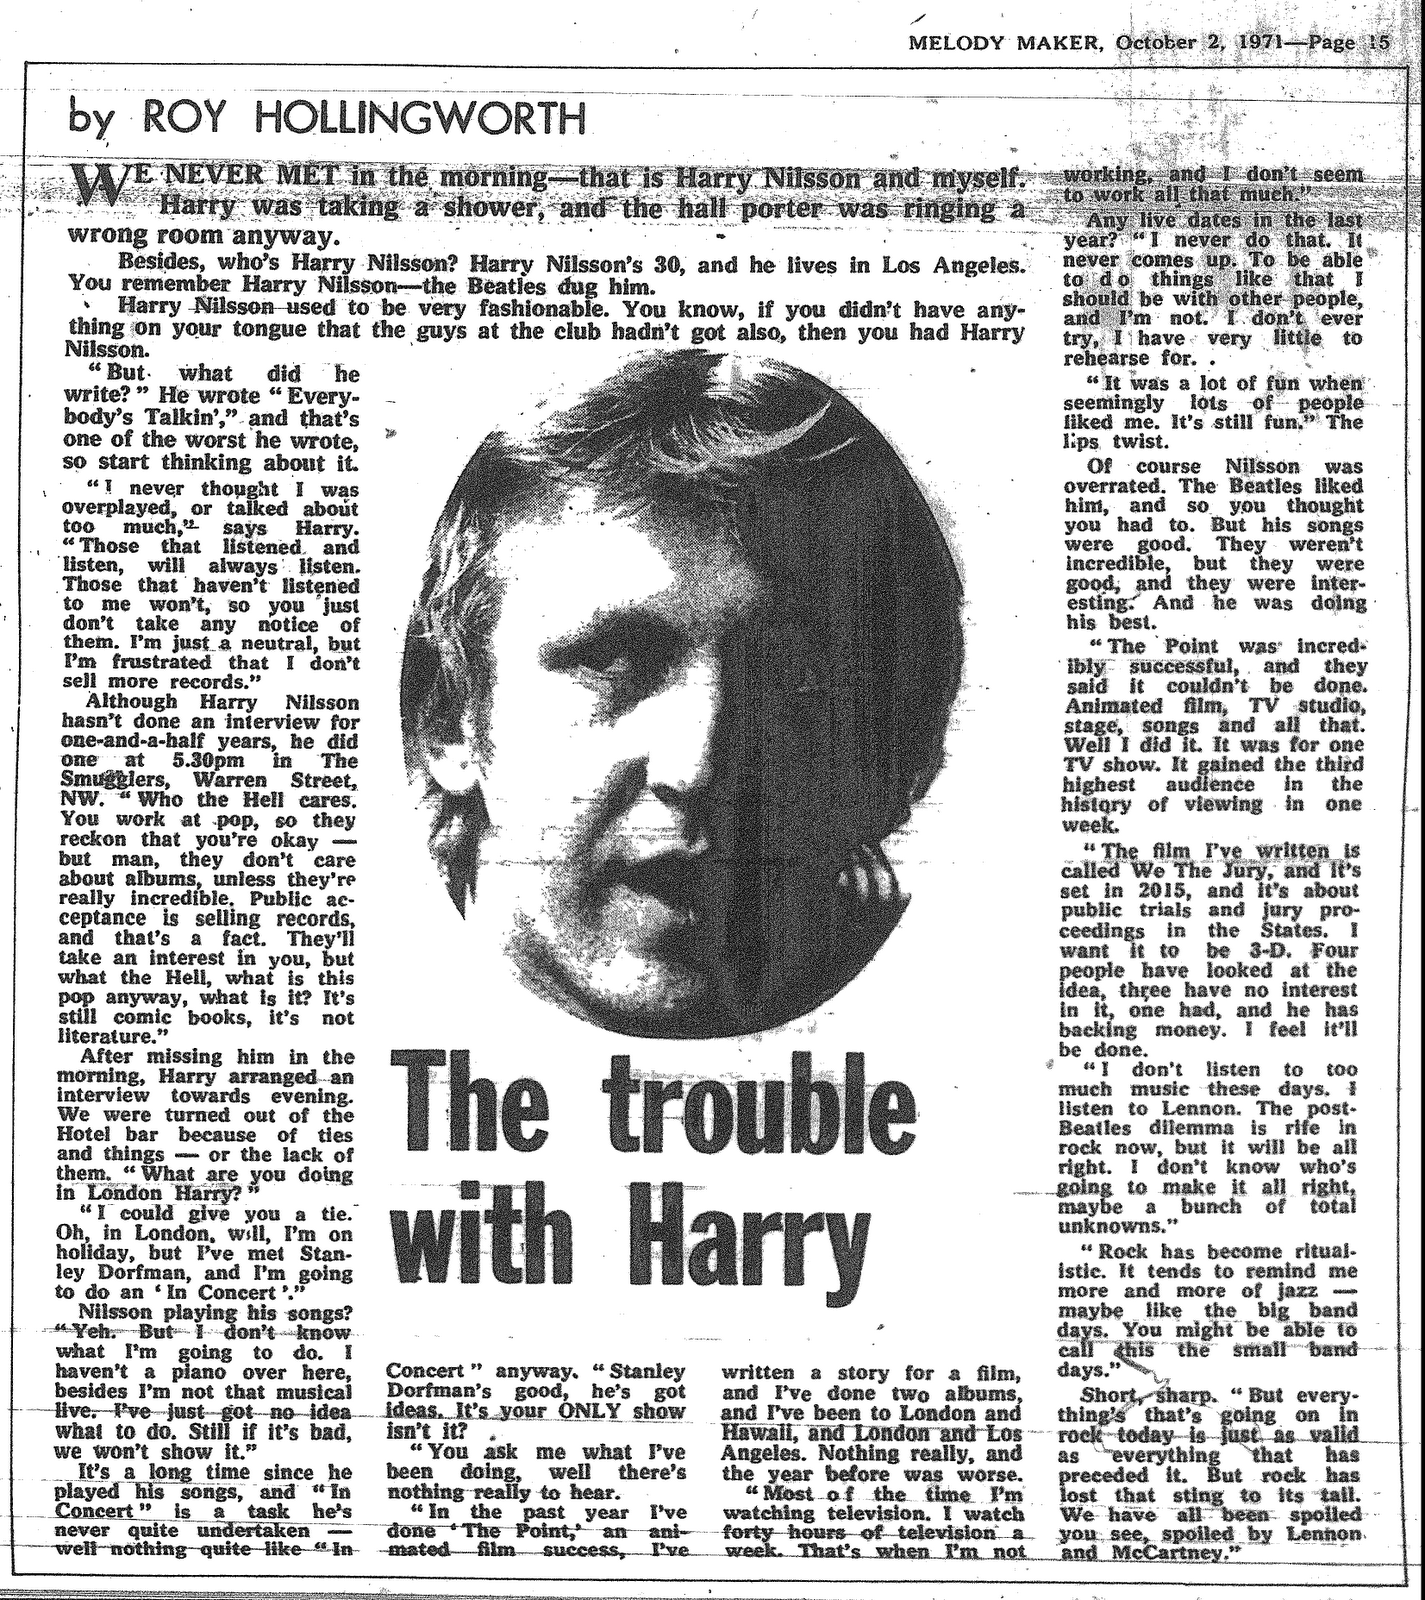 Interesting interview from 1971. Elusive as always